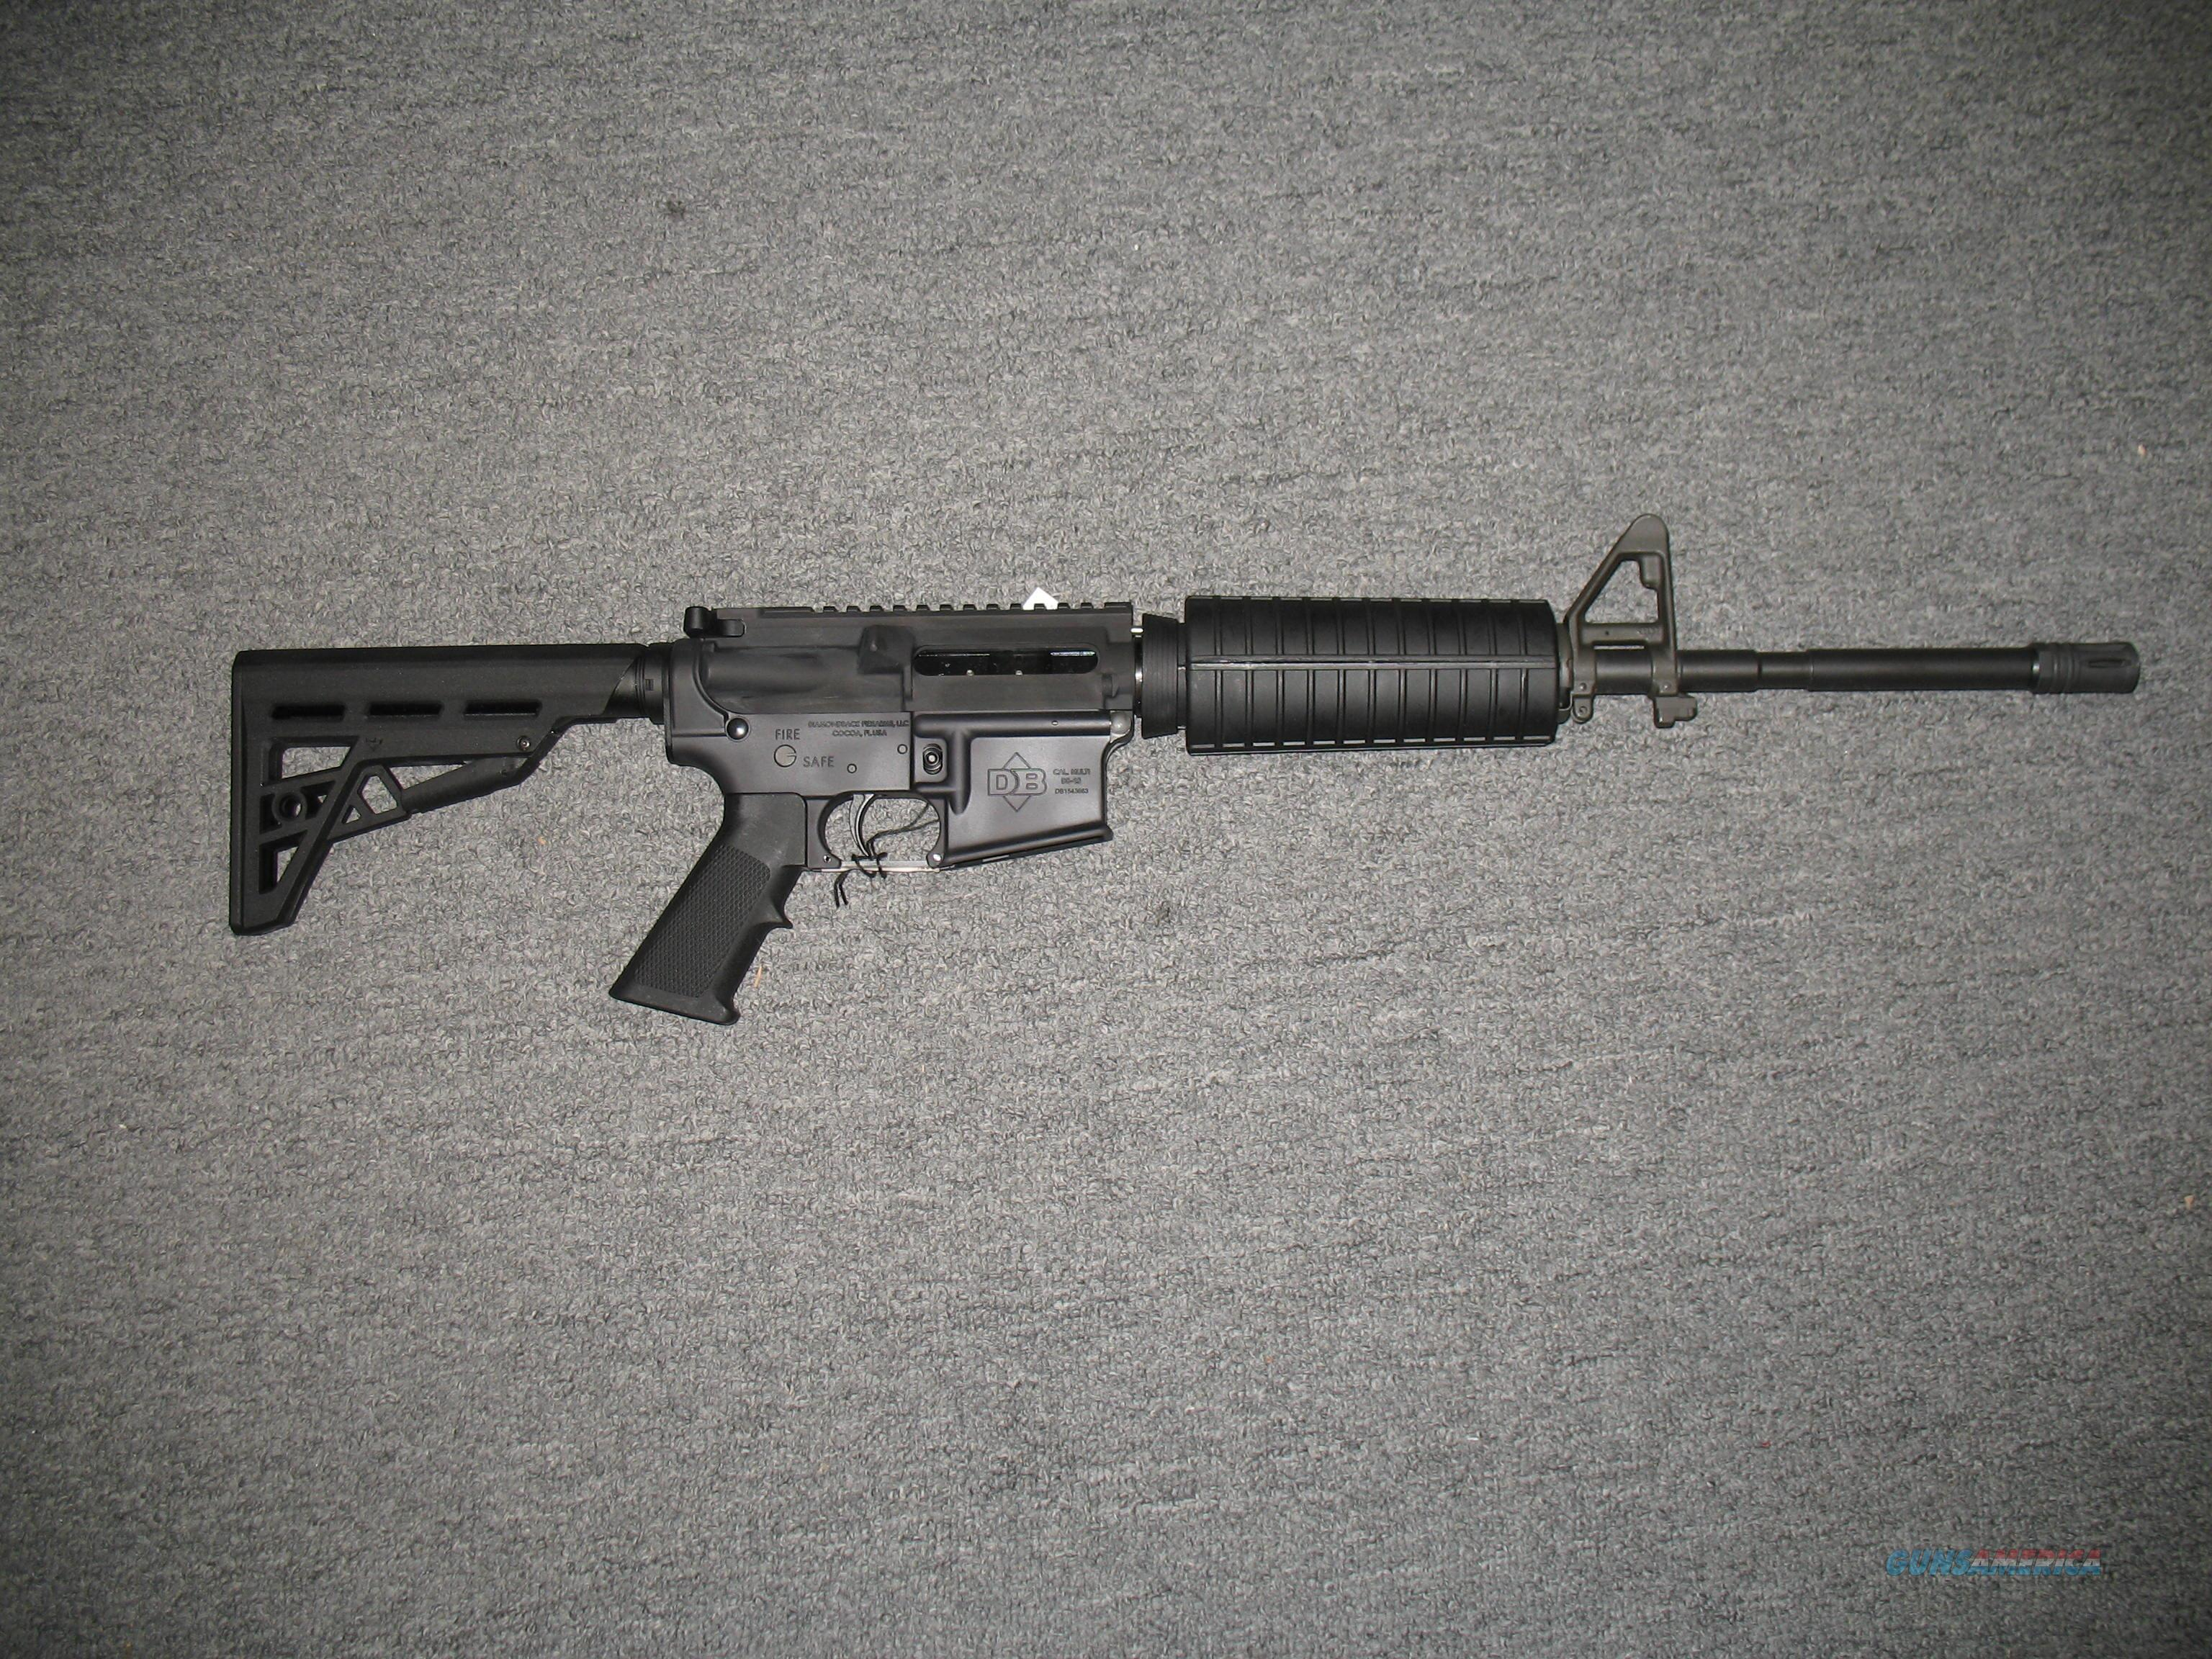 DiamondBack DB-15  5.56mm  Guns > Rifles > AR-15 Rifles - Small Manufacturers > Complete Rifle